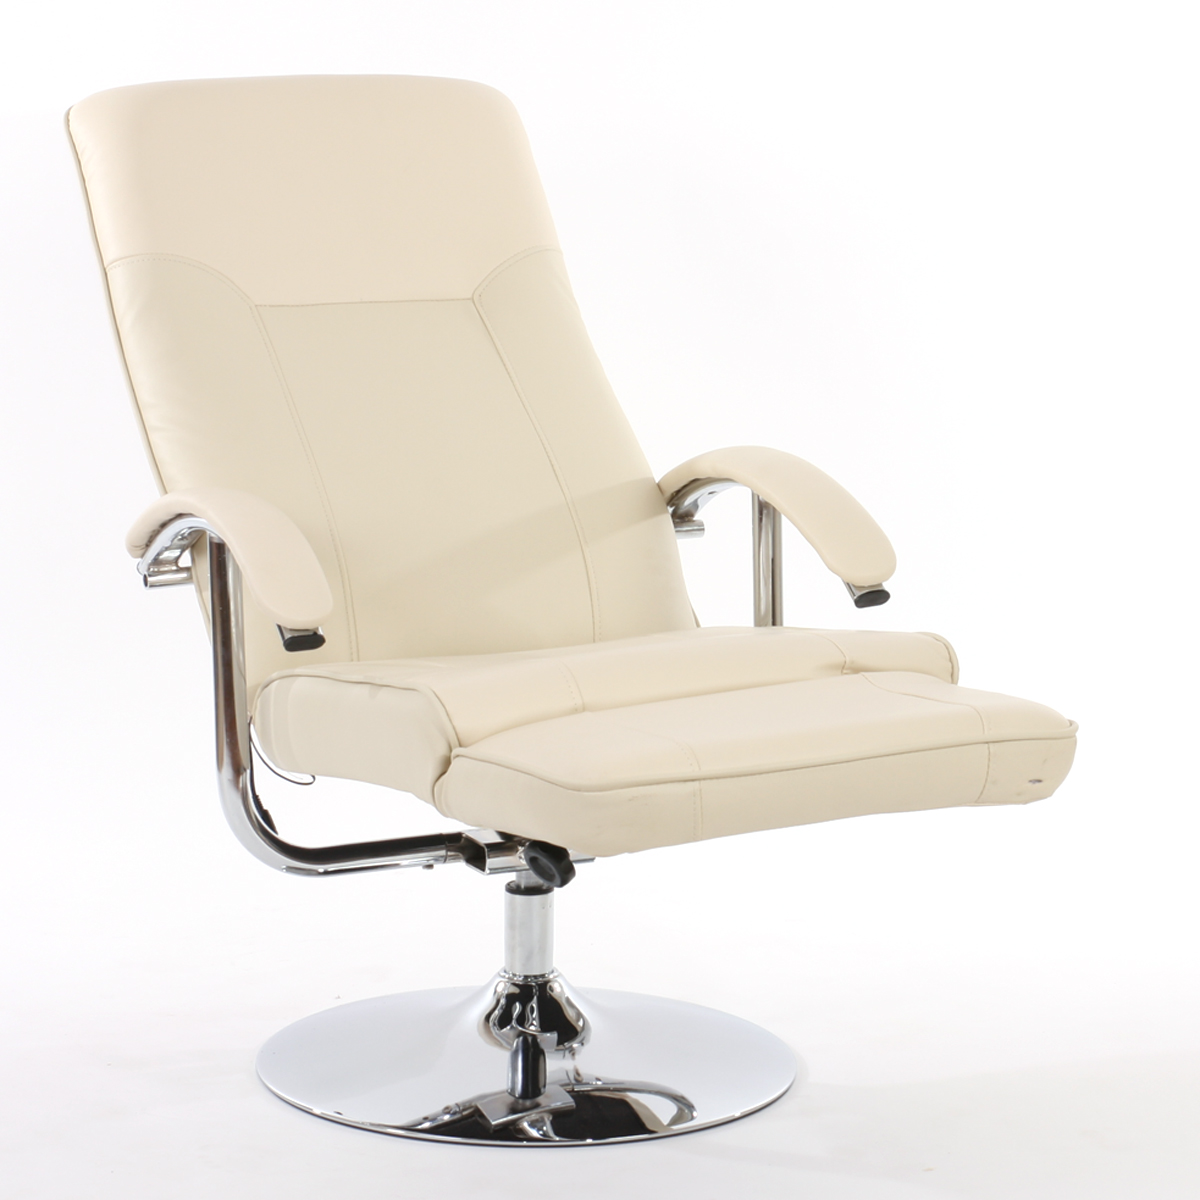 FAUTEUIL INCLINABLE RELAX STYLE PLUSIEURS COLORIS DISPONIBLE - Fauteuil inclinable